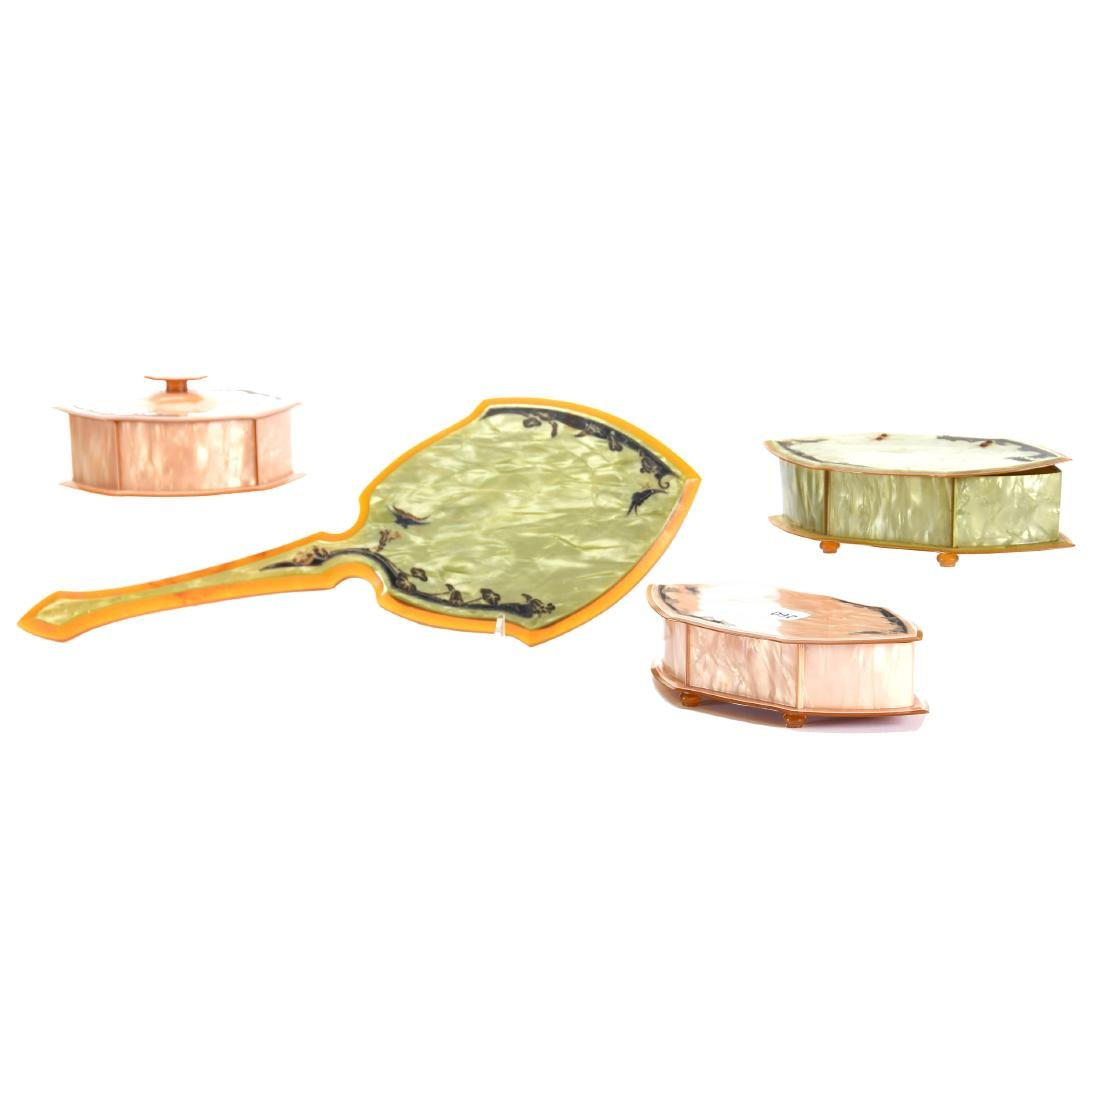 Four Piece Celluloid Vanity Set